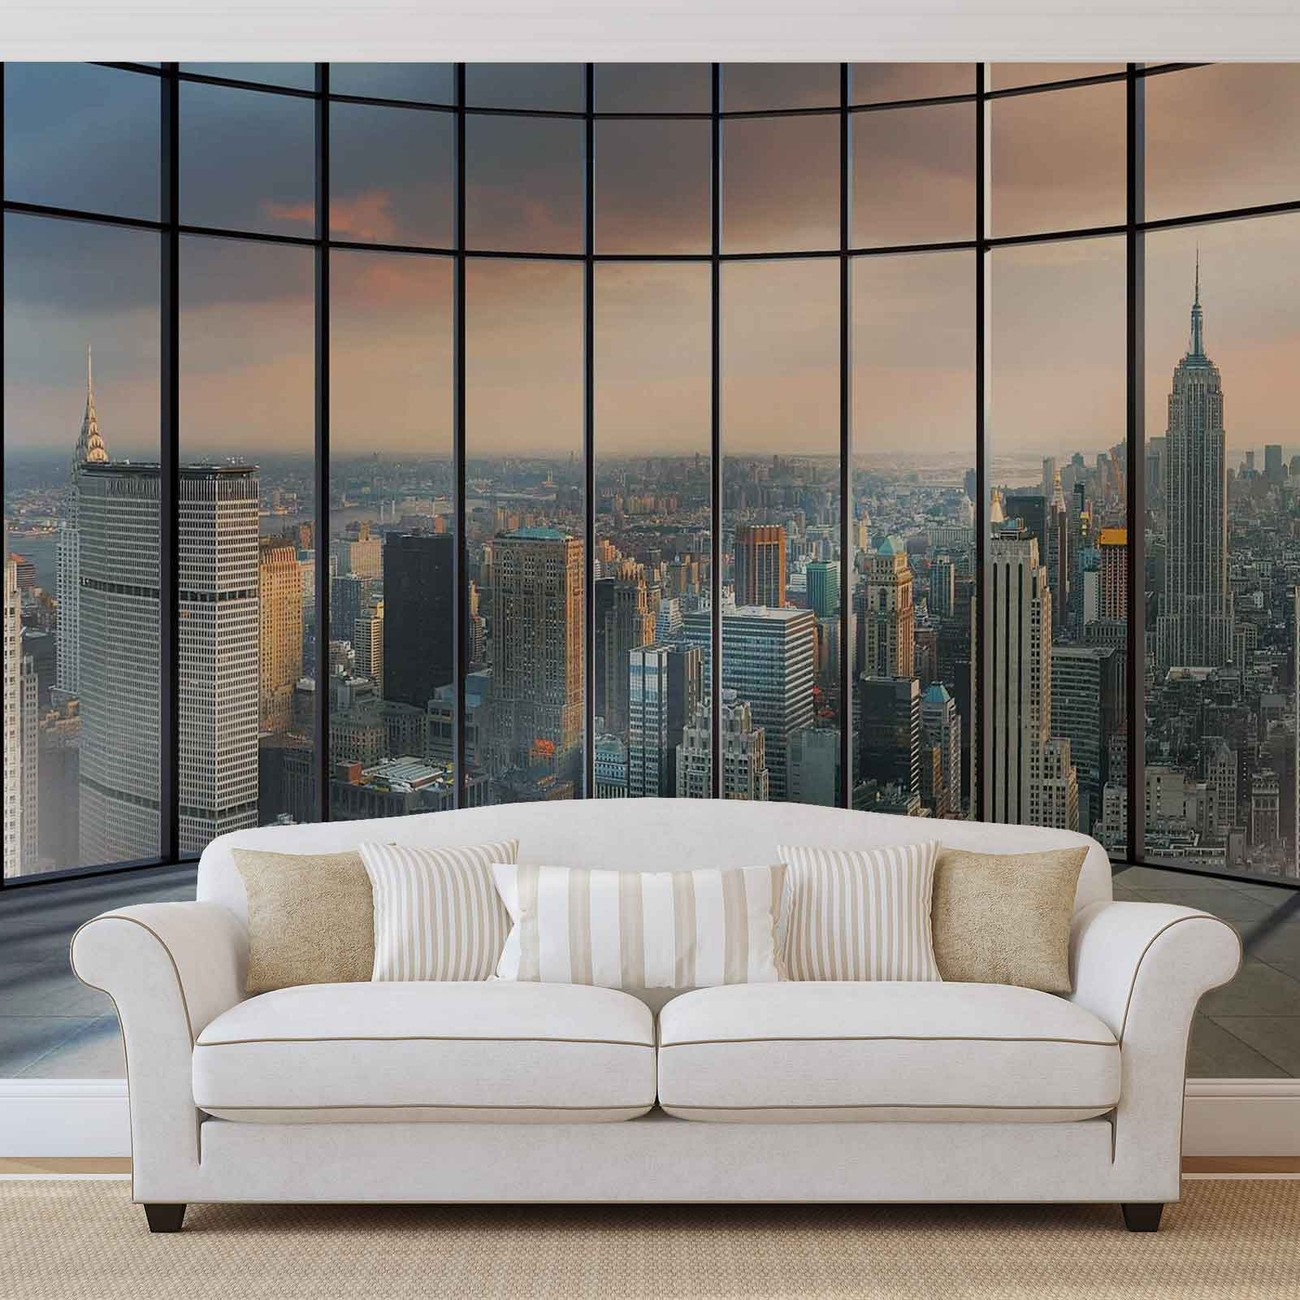 view new york city wall paper mural buy at europosters. Black Bedroom Furniture Sets. Home Design Ideas